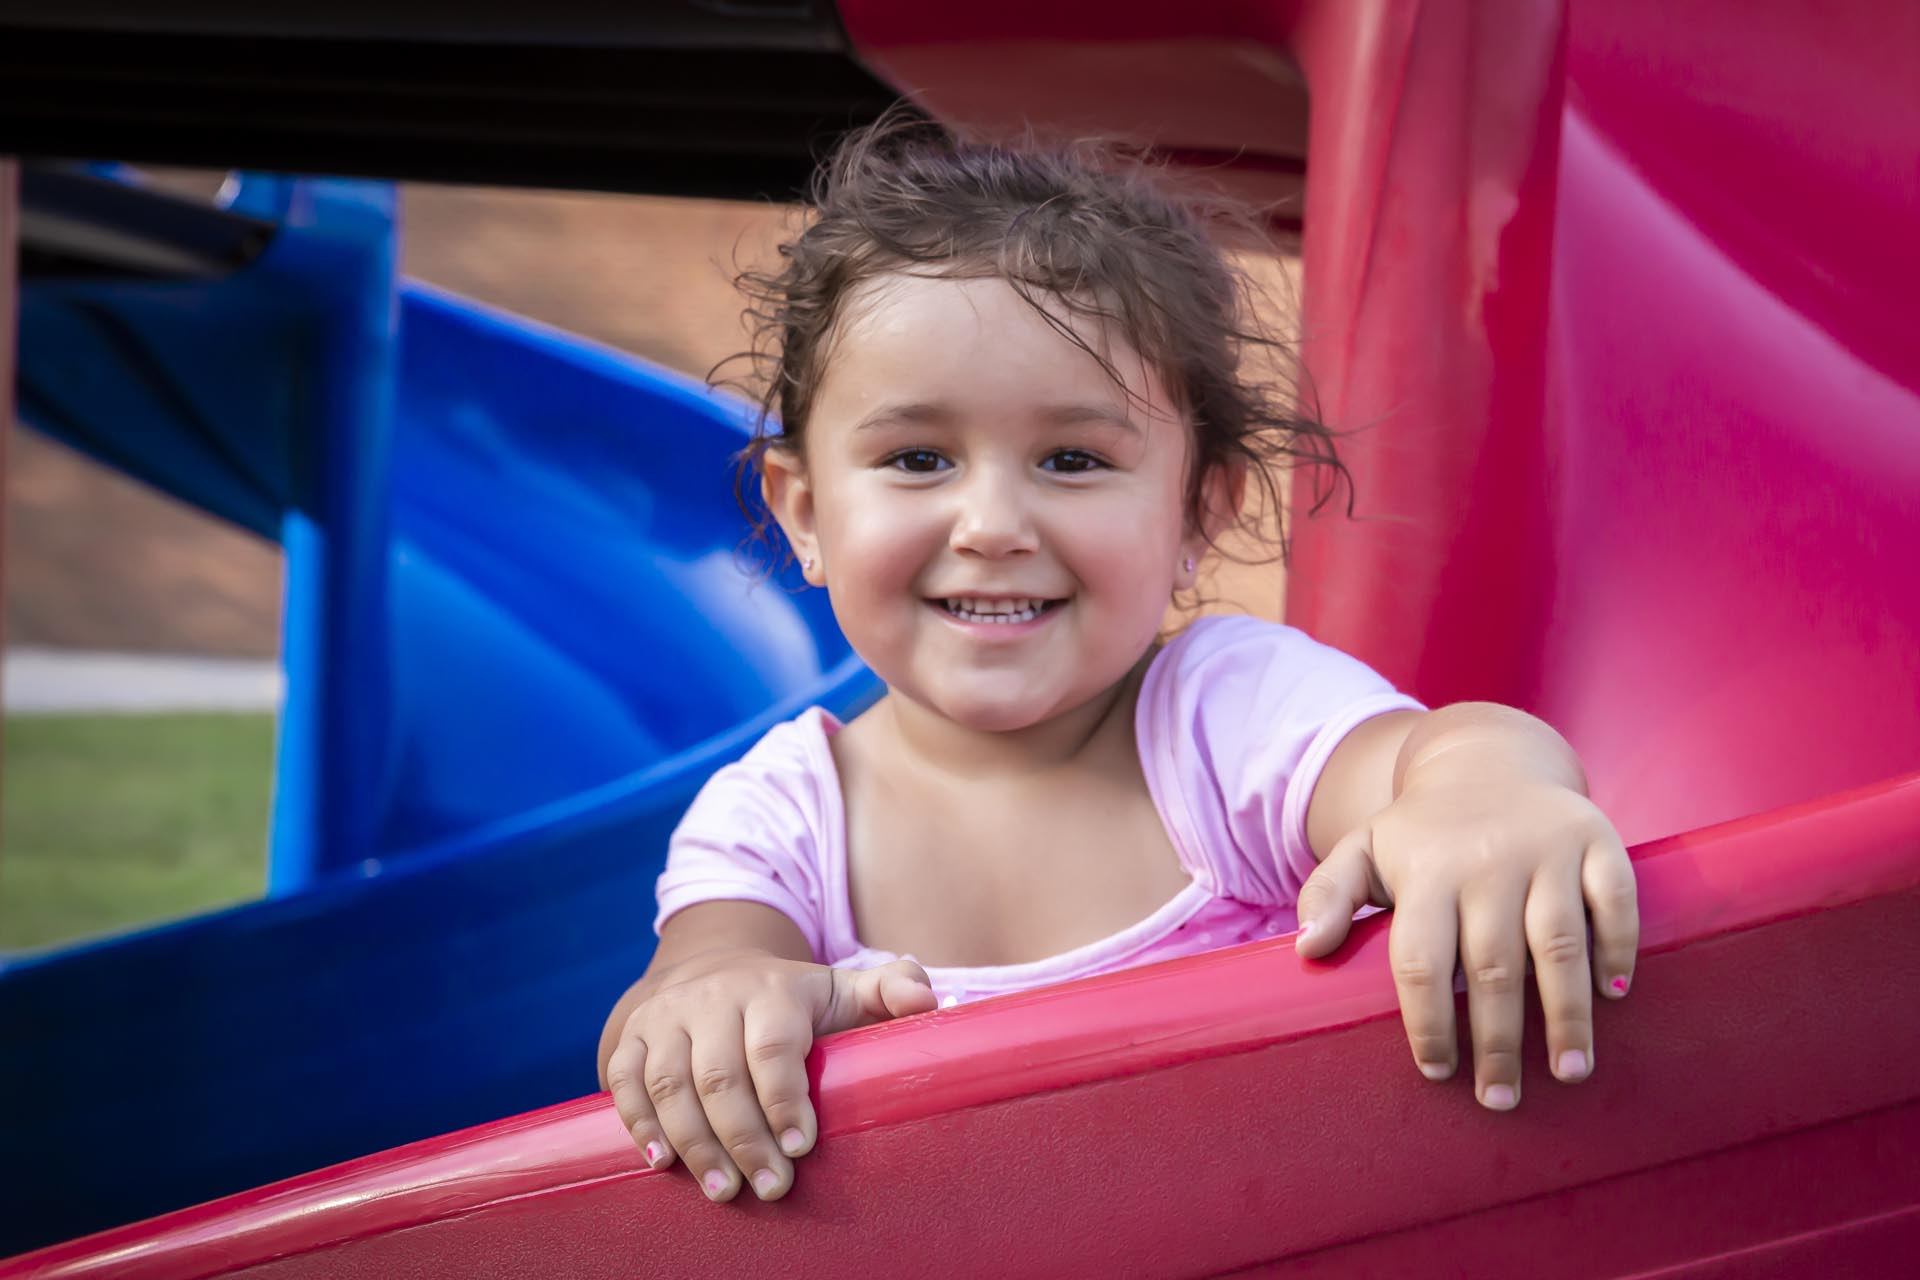 Image of a child on the playground smiling